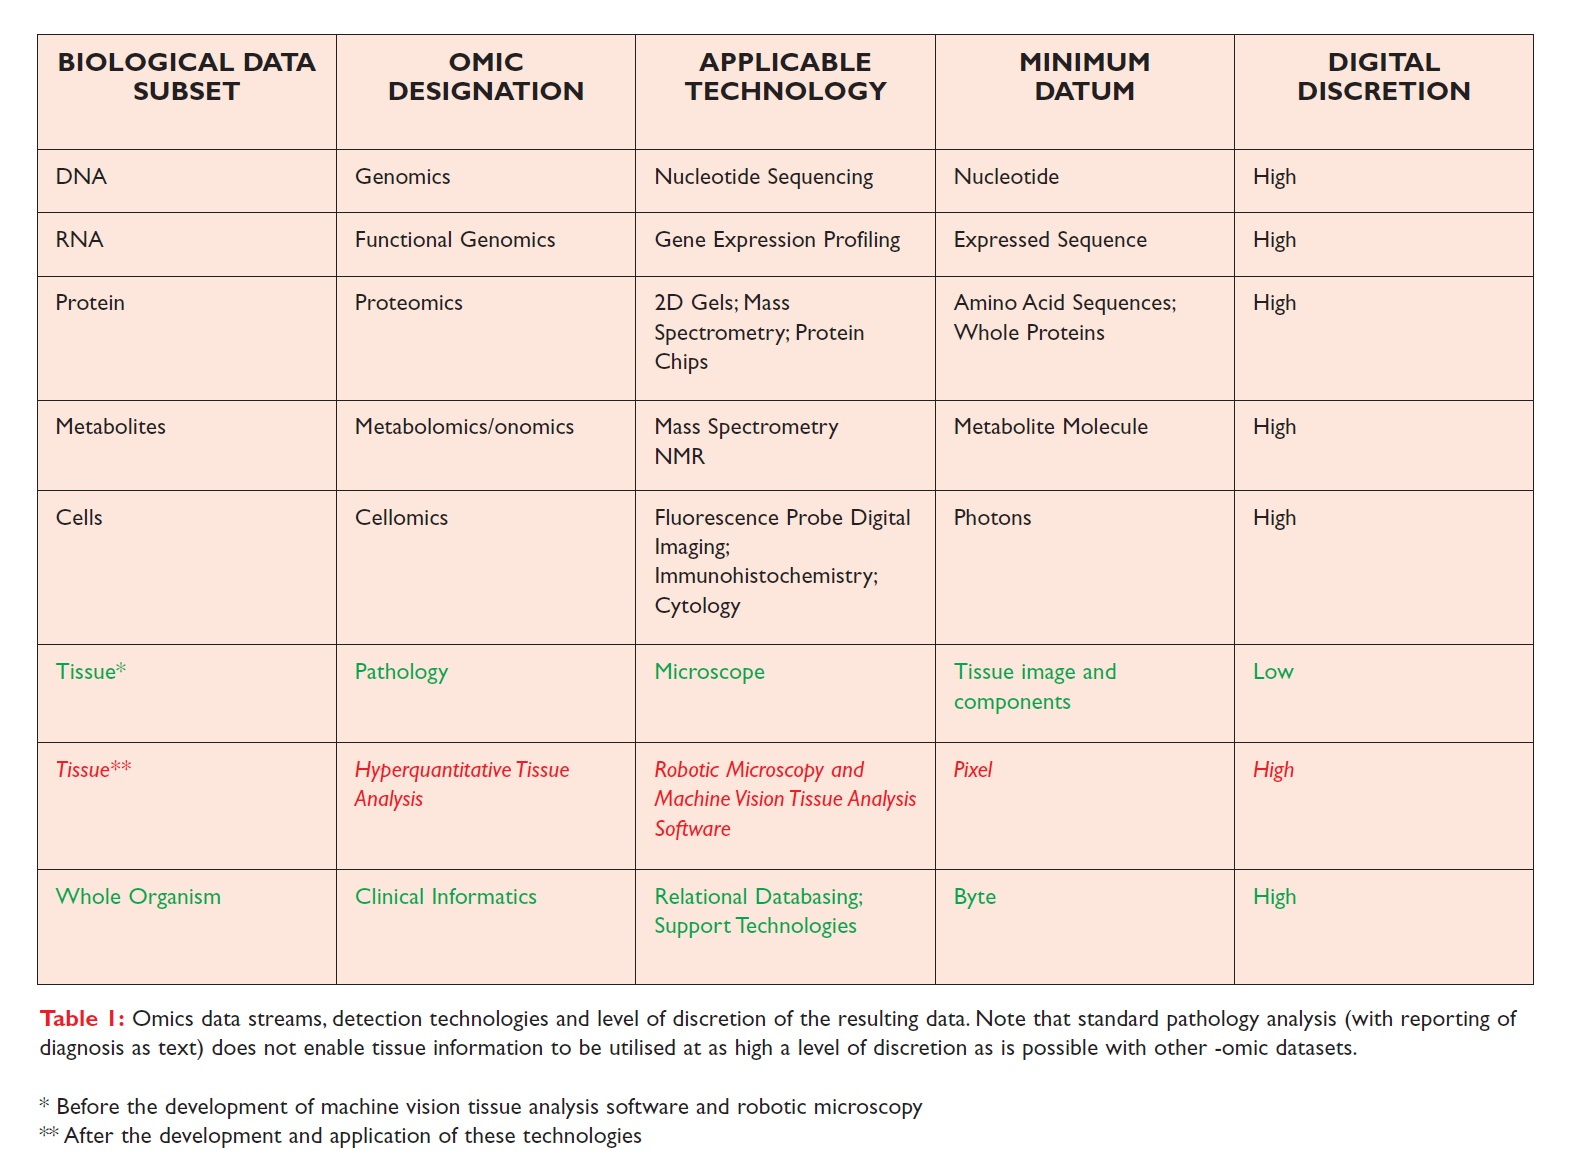 Table 1 Omics data streams, detection technologies and level of discretion of the resulting data